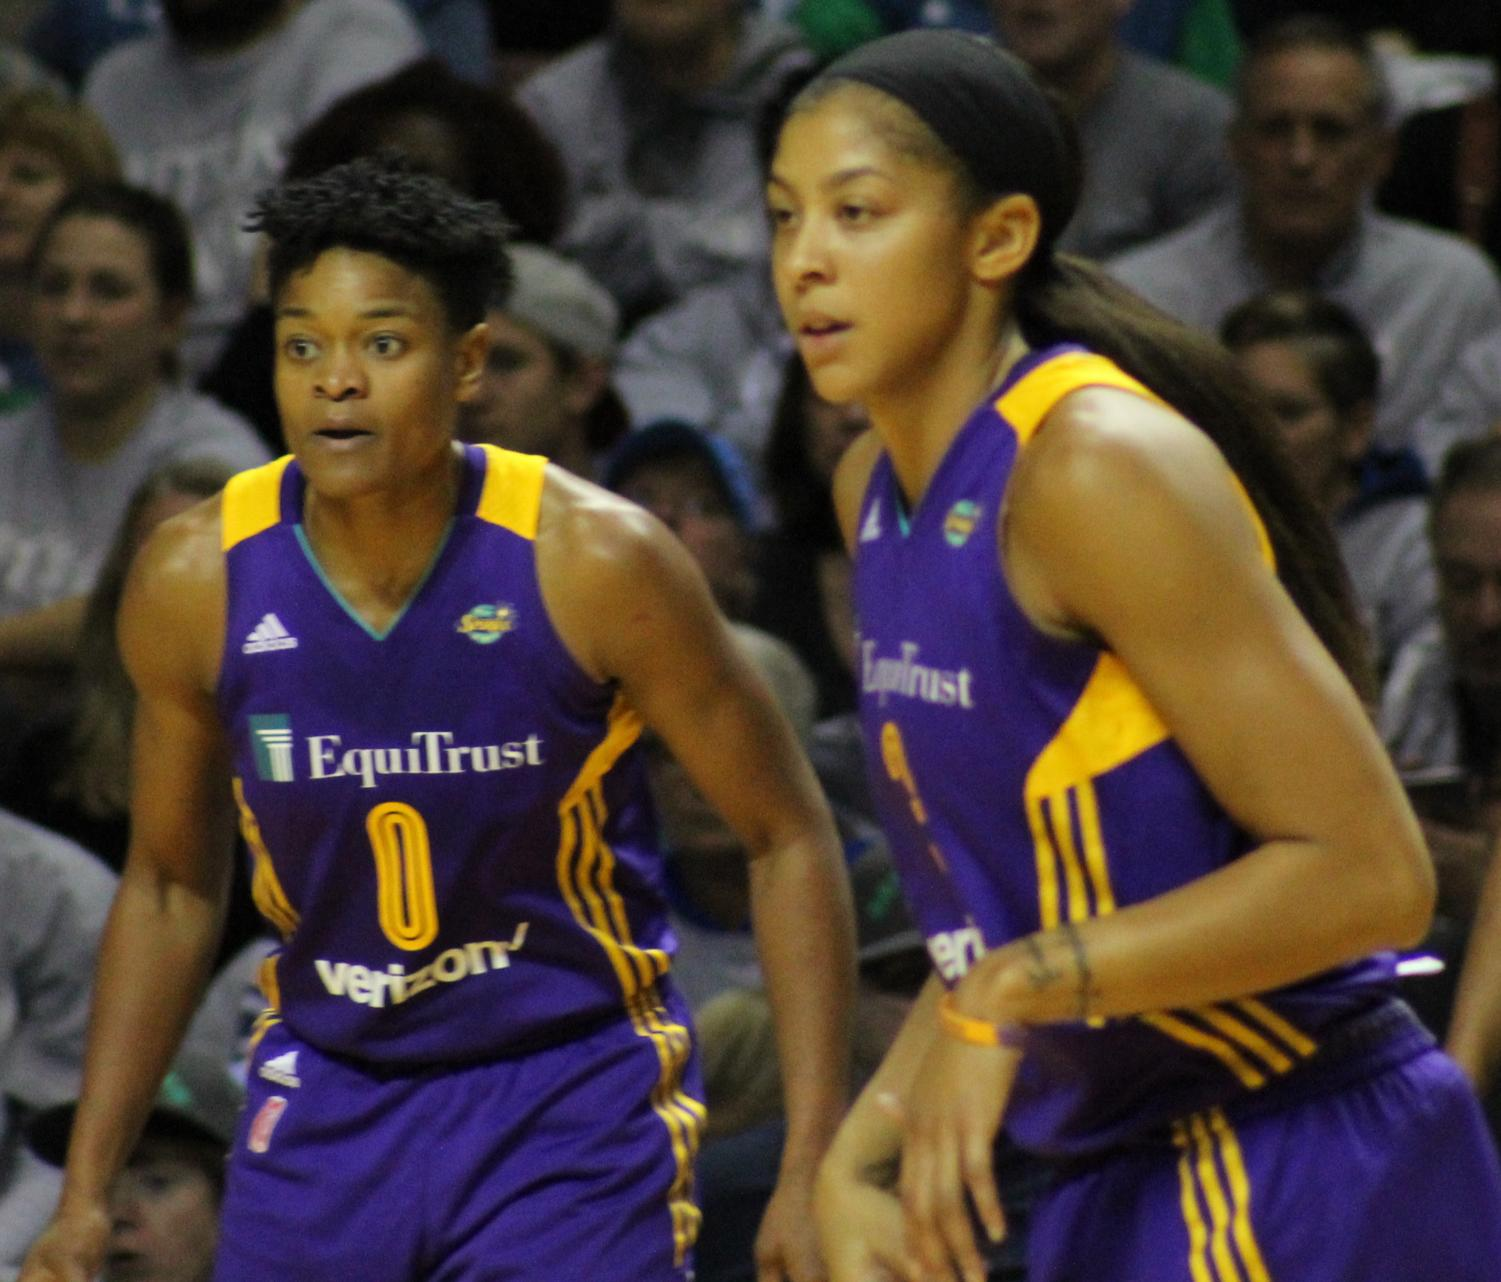 Candace Parker and Riquna Williams of the Los Angeles Sparks, two WNBA players.